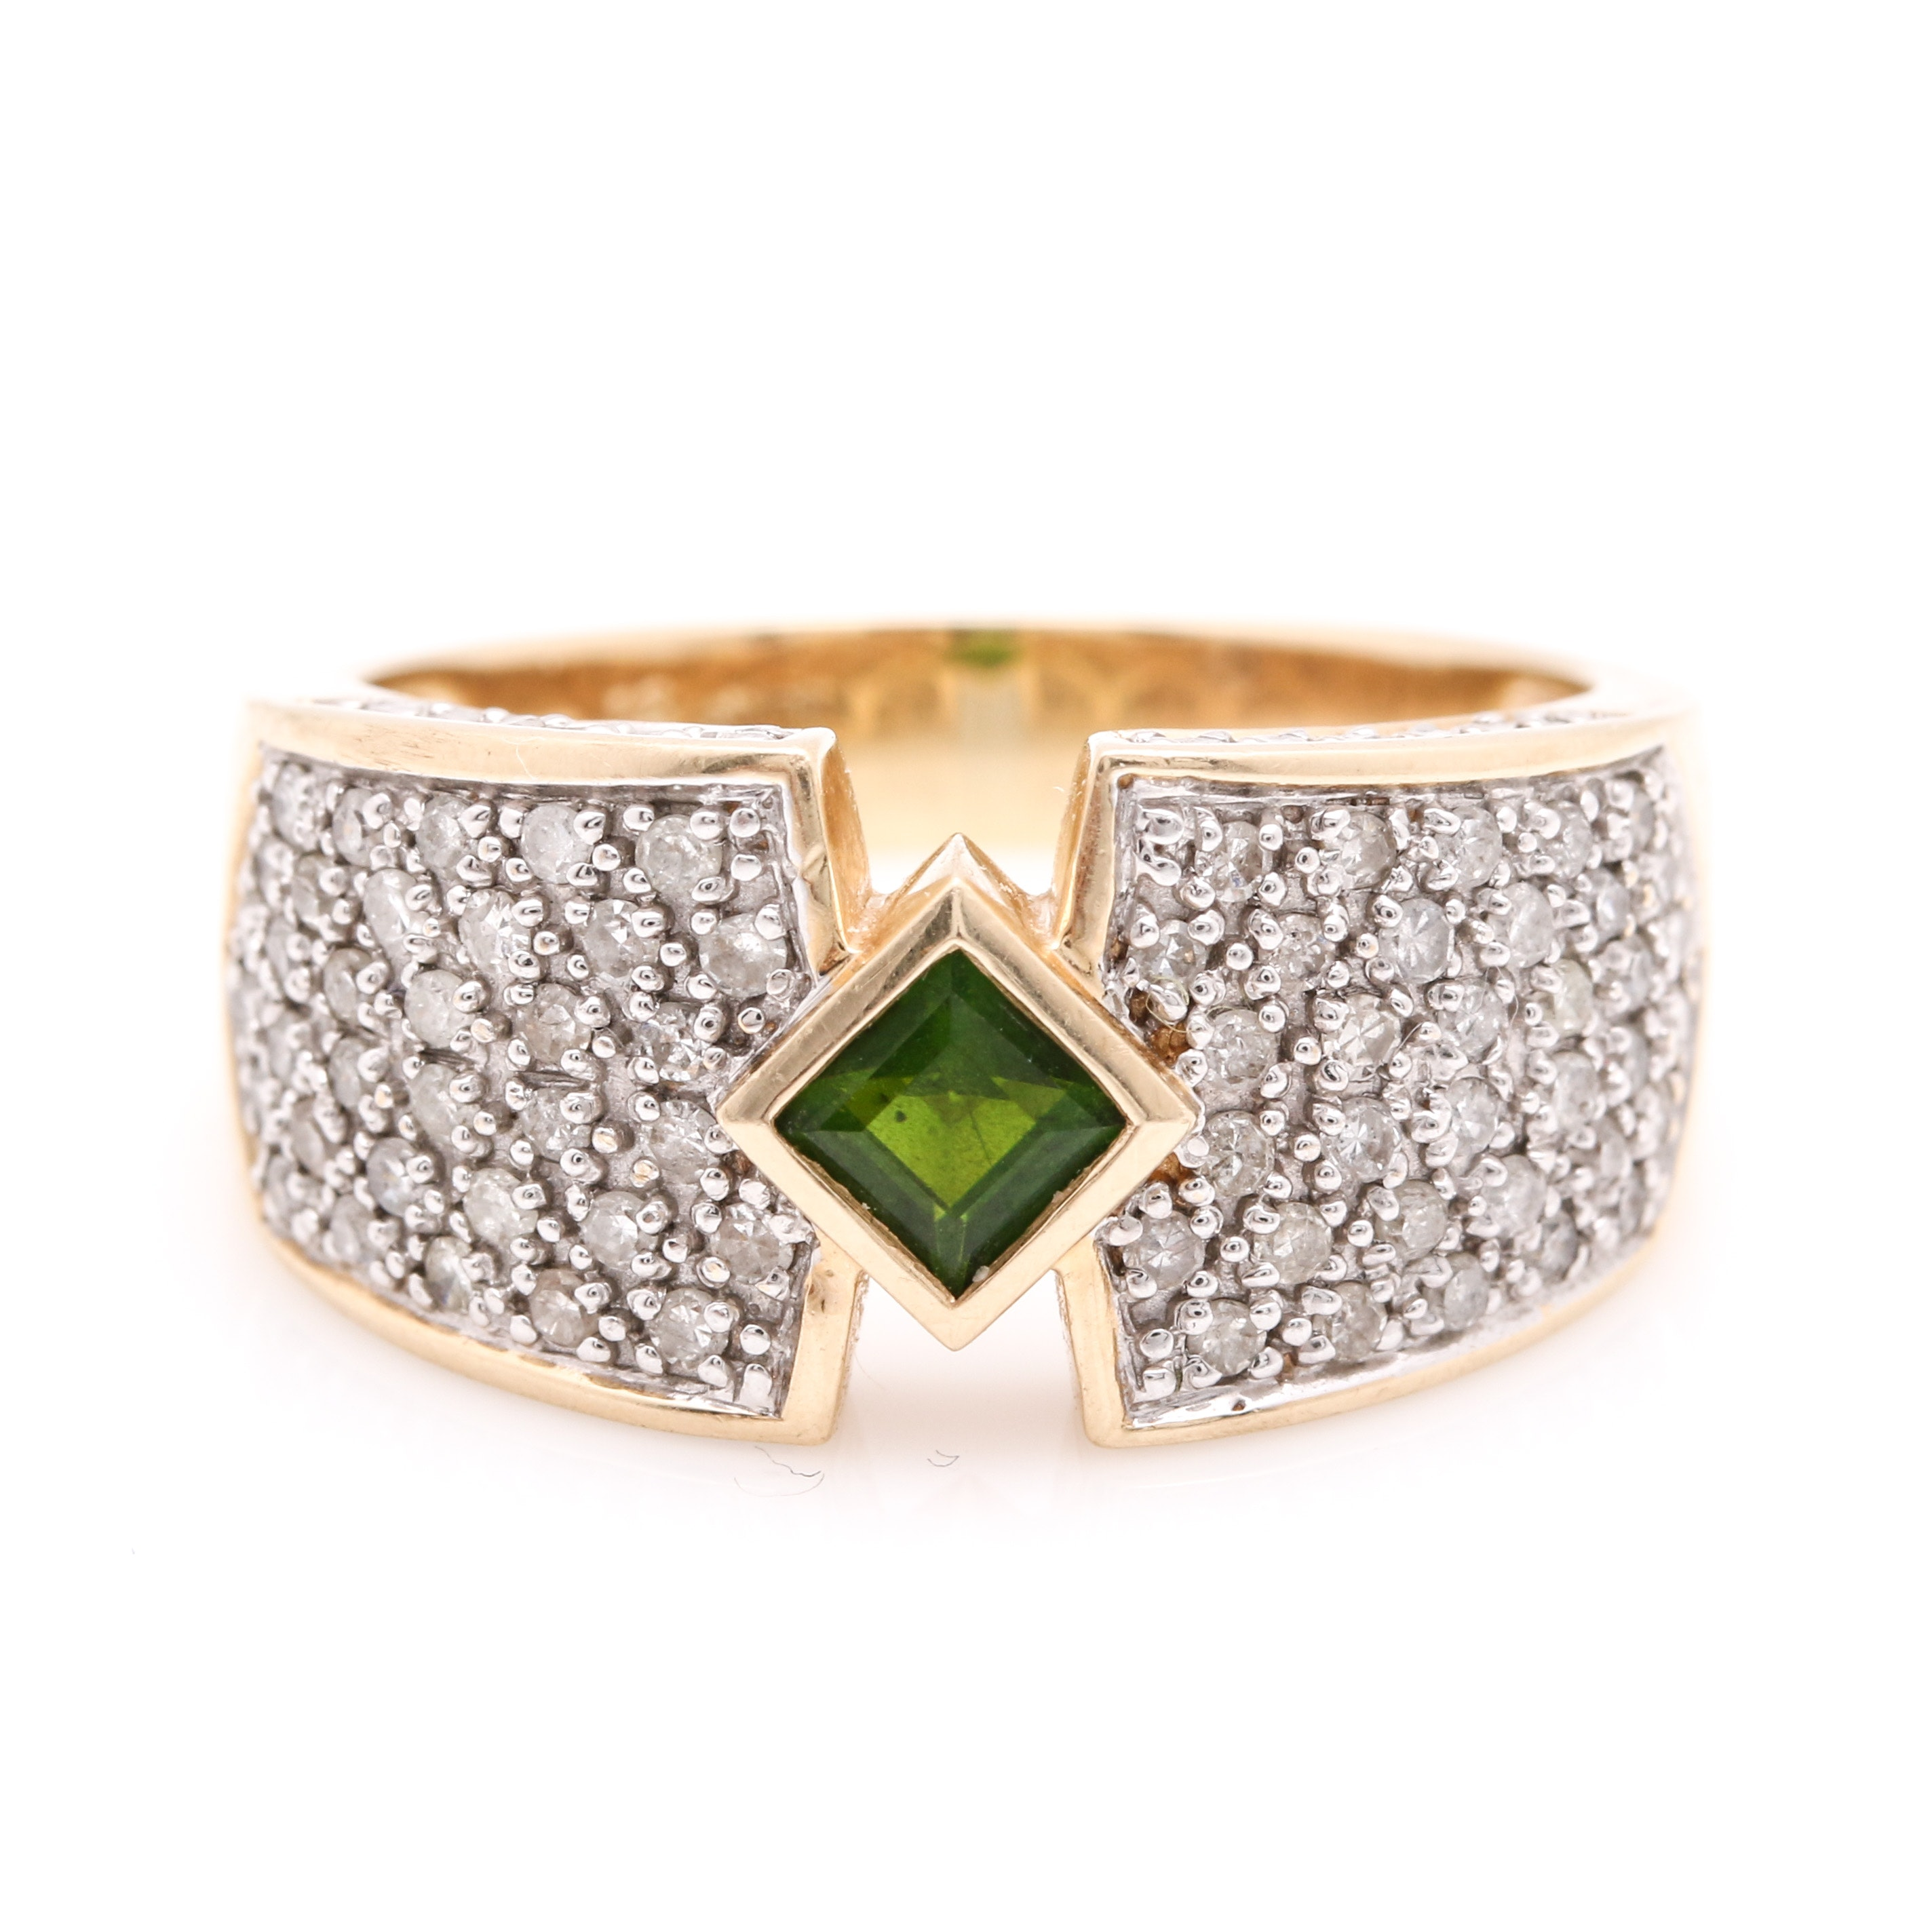 14K Yellow Gold 0.92 CTW Diamond and Green Tourmaline Ring